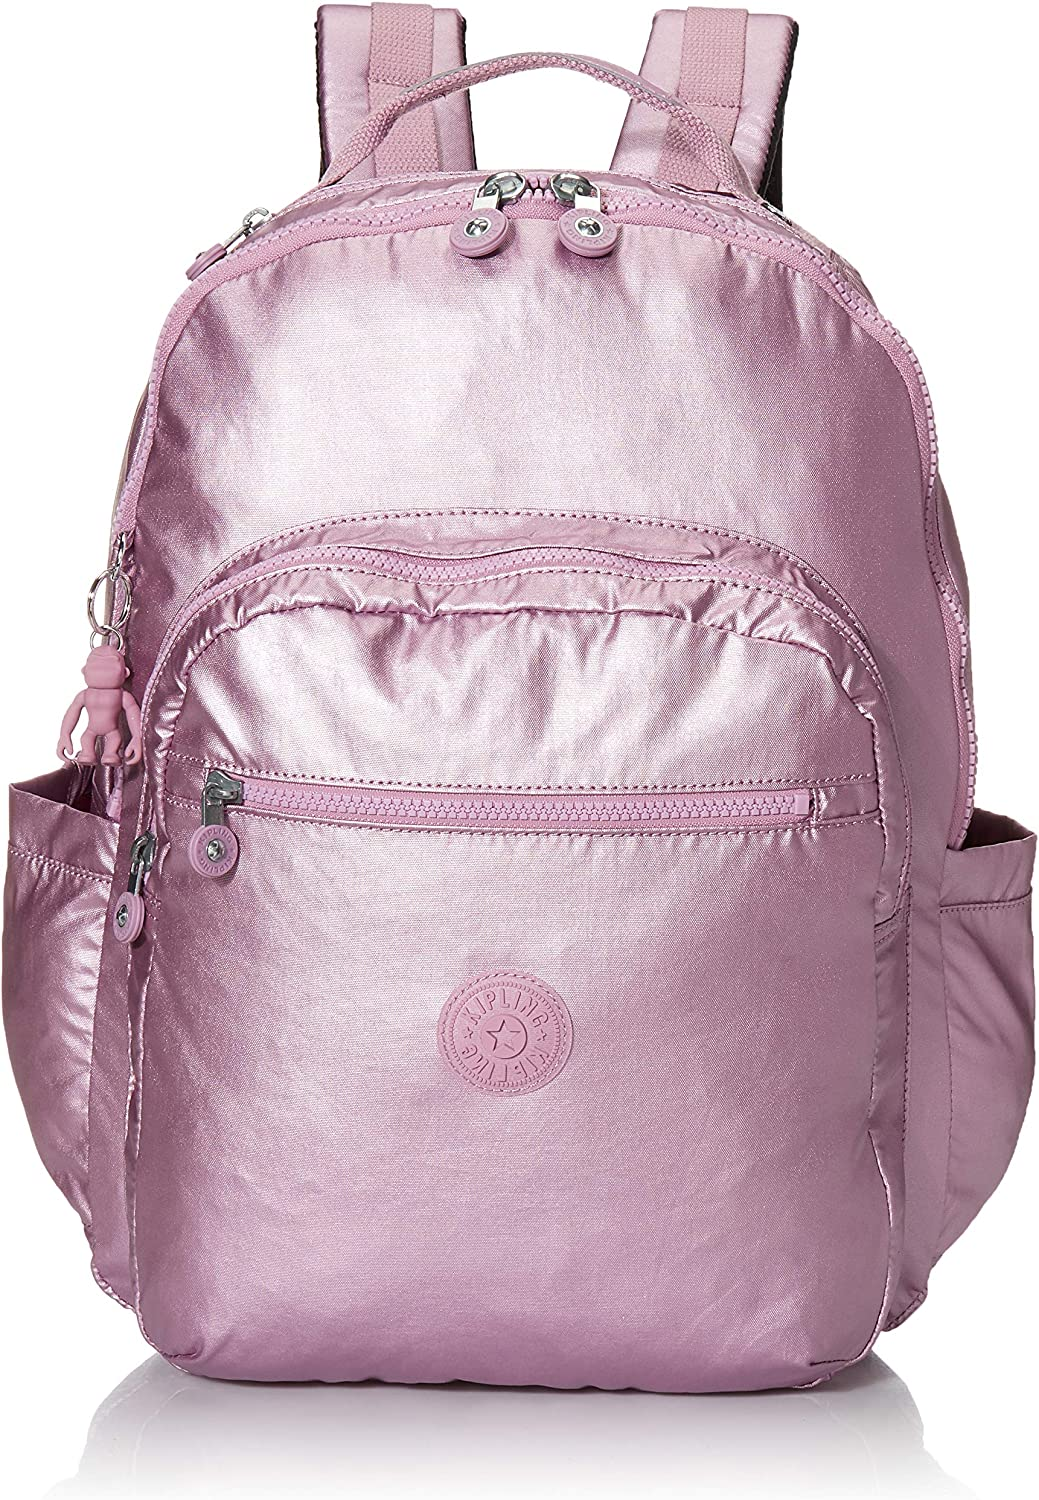 Kipling Women's Seoul XL Laptop Backpack